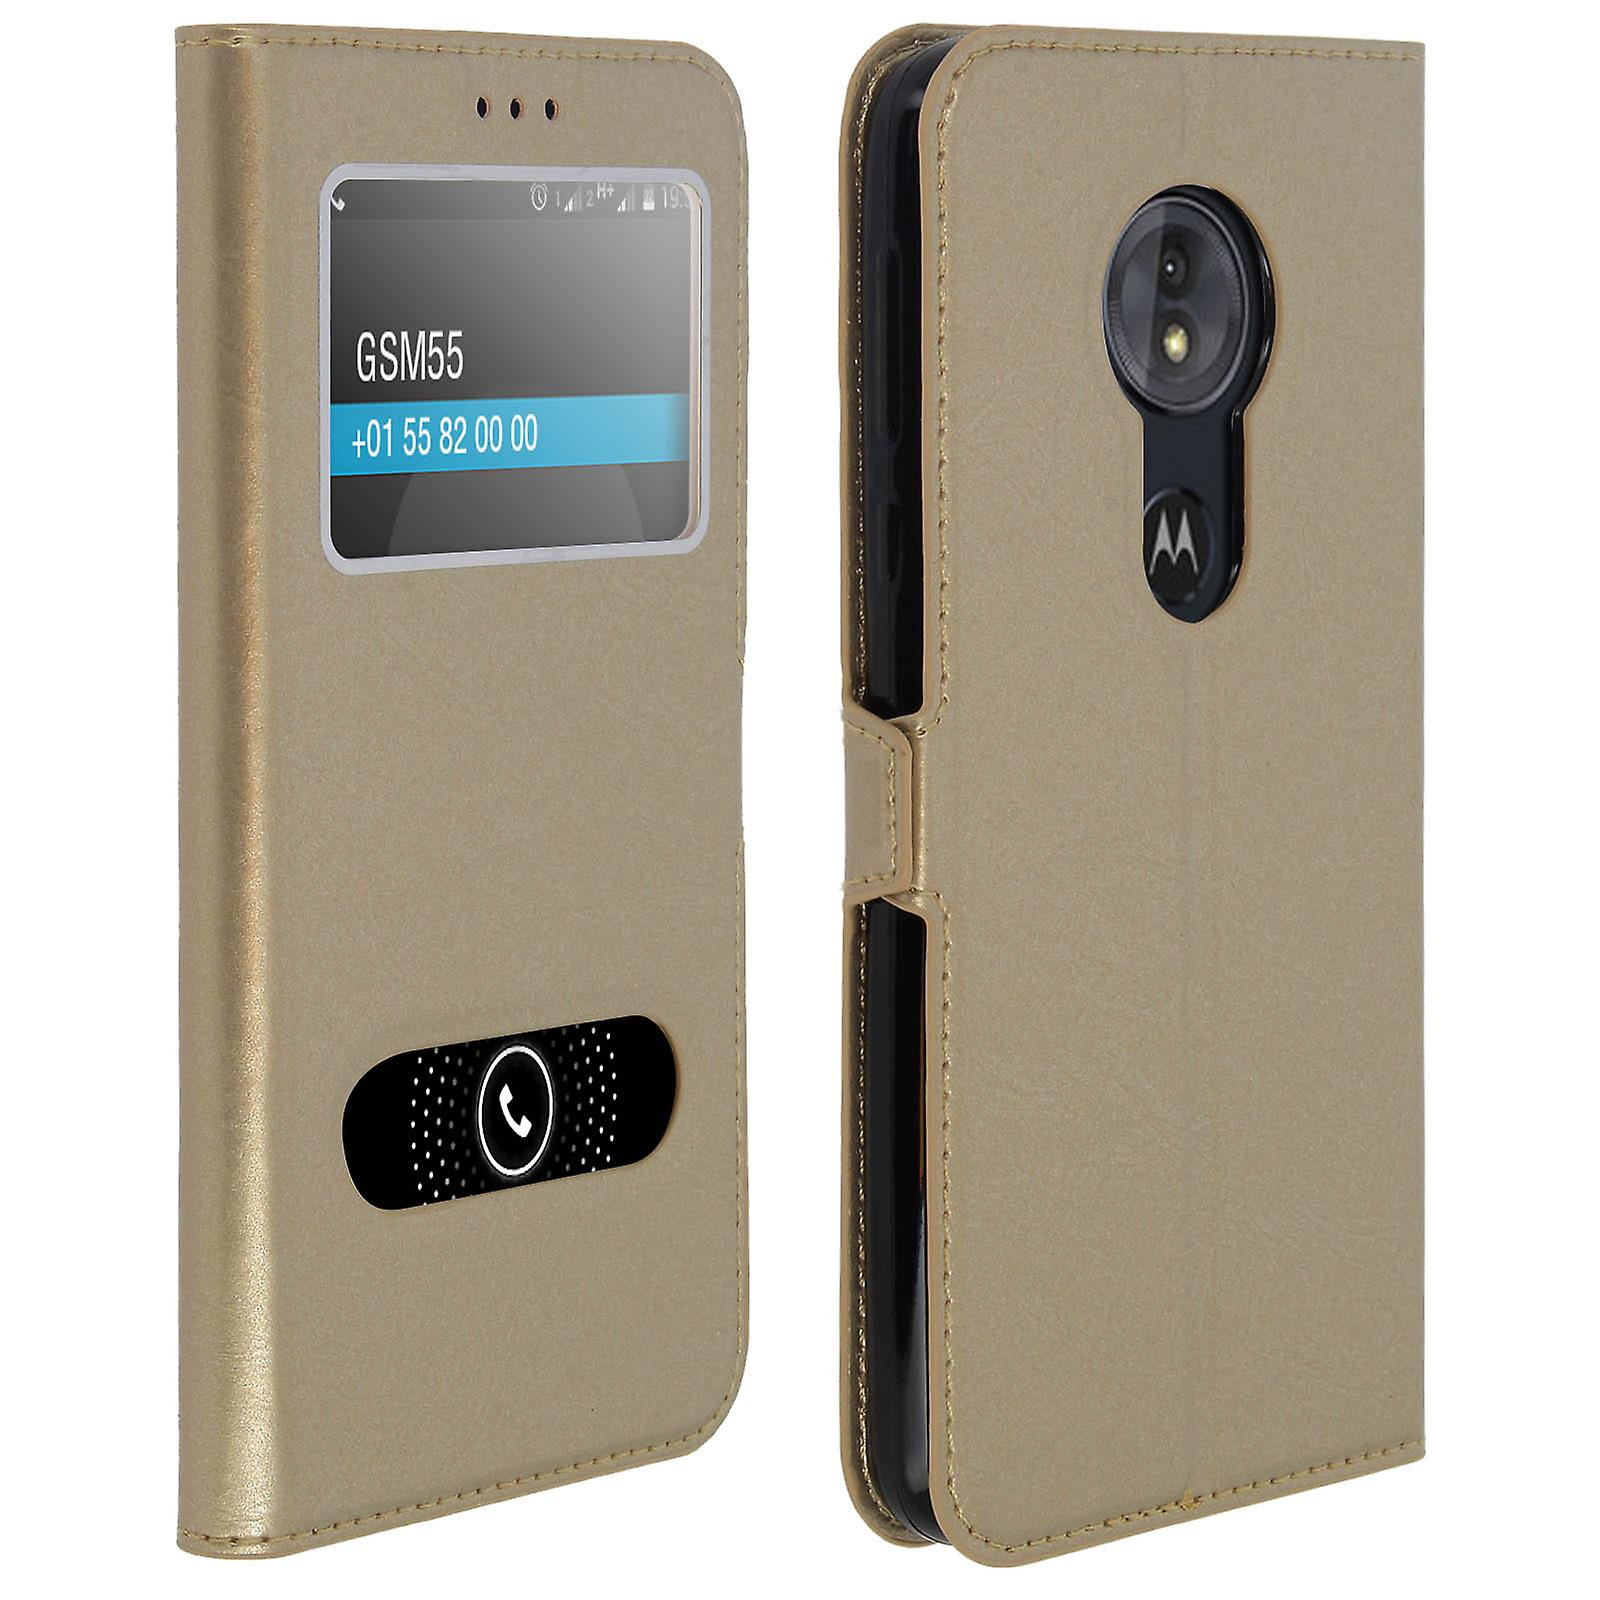 online retailer 58fb7 a9dee Double window flip standing case for Motorola Moto G6 Play with TPU shell -  Gold